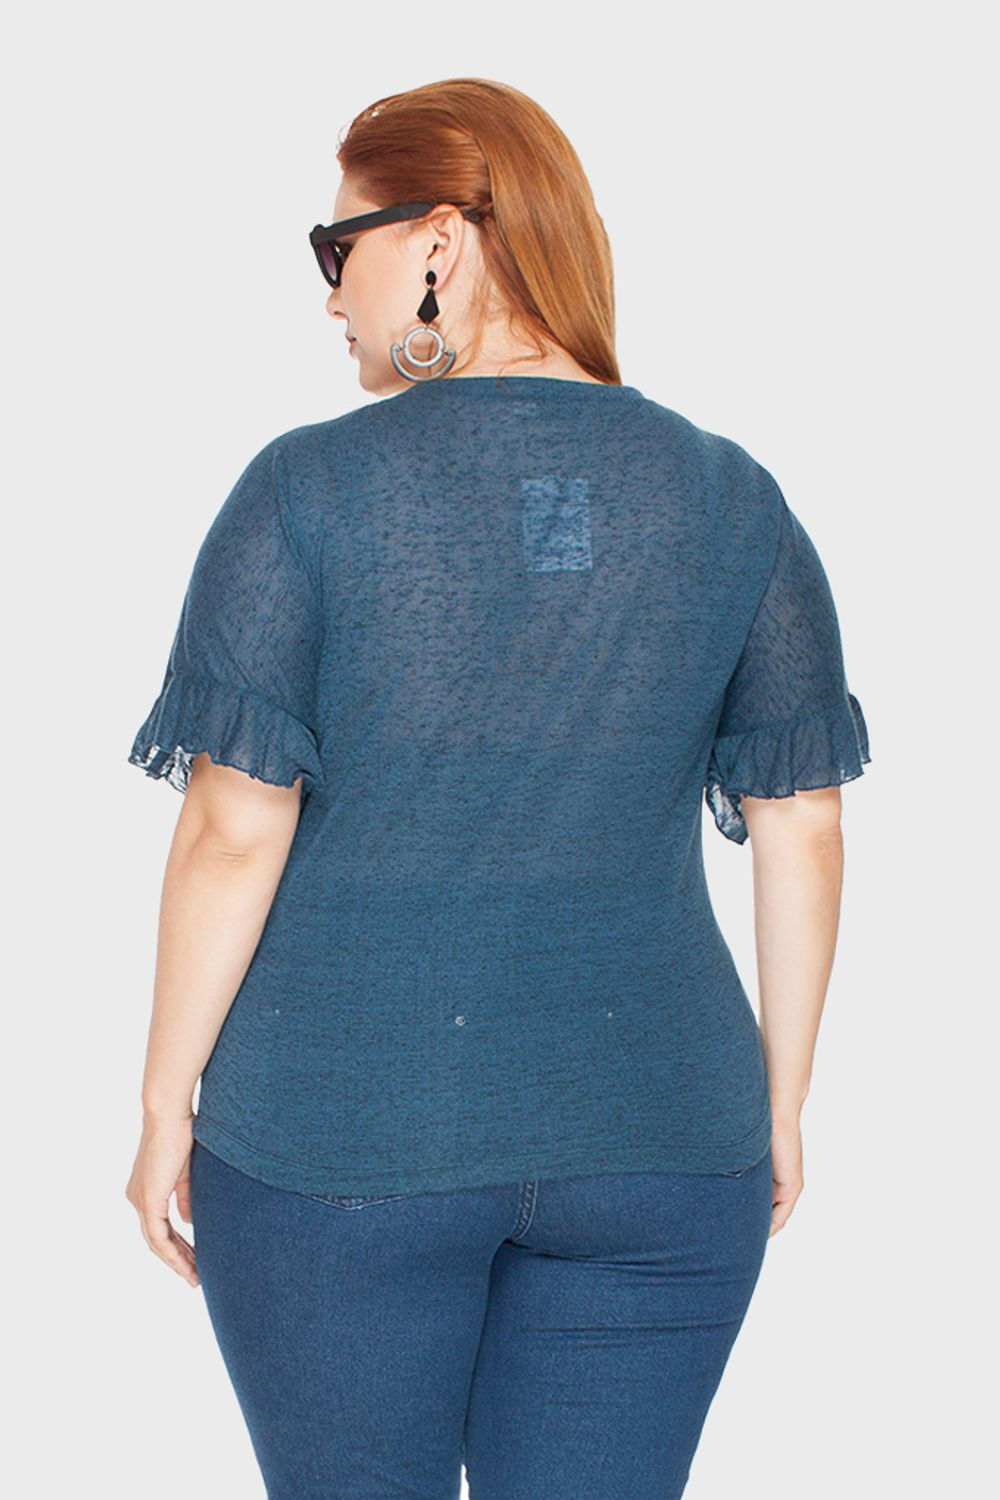 Blusa-New-Antropology-Babados-Plus-Size_T2